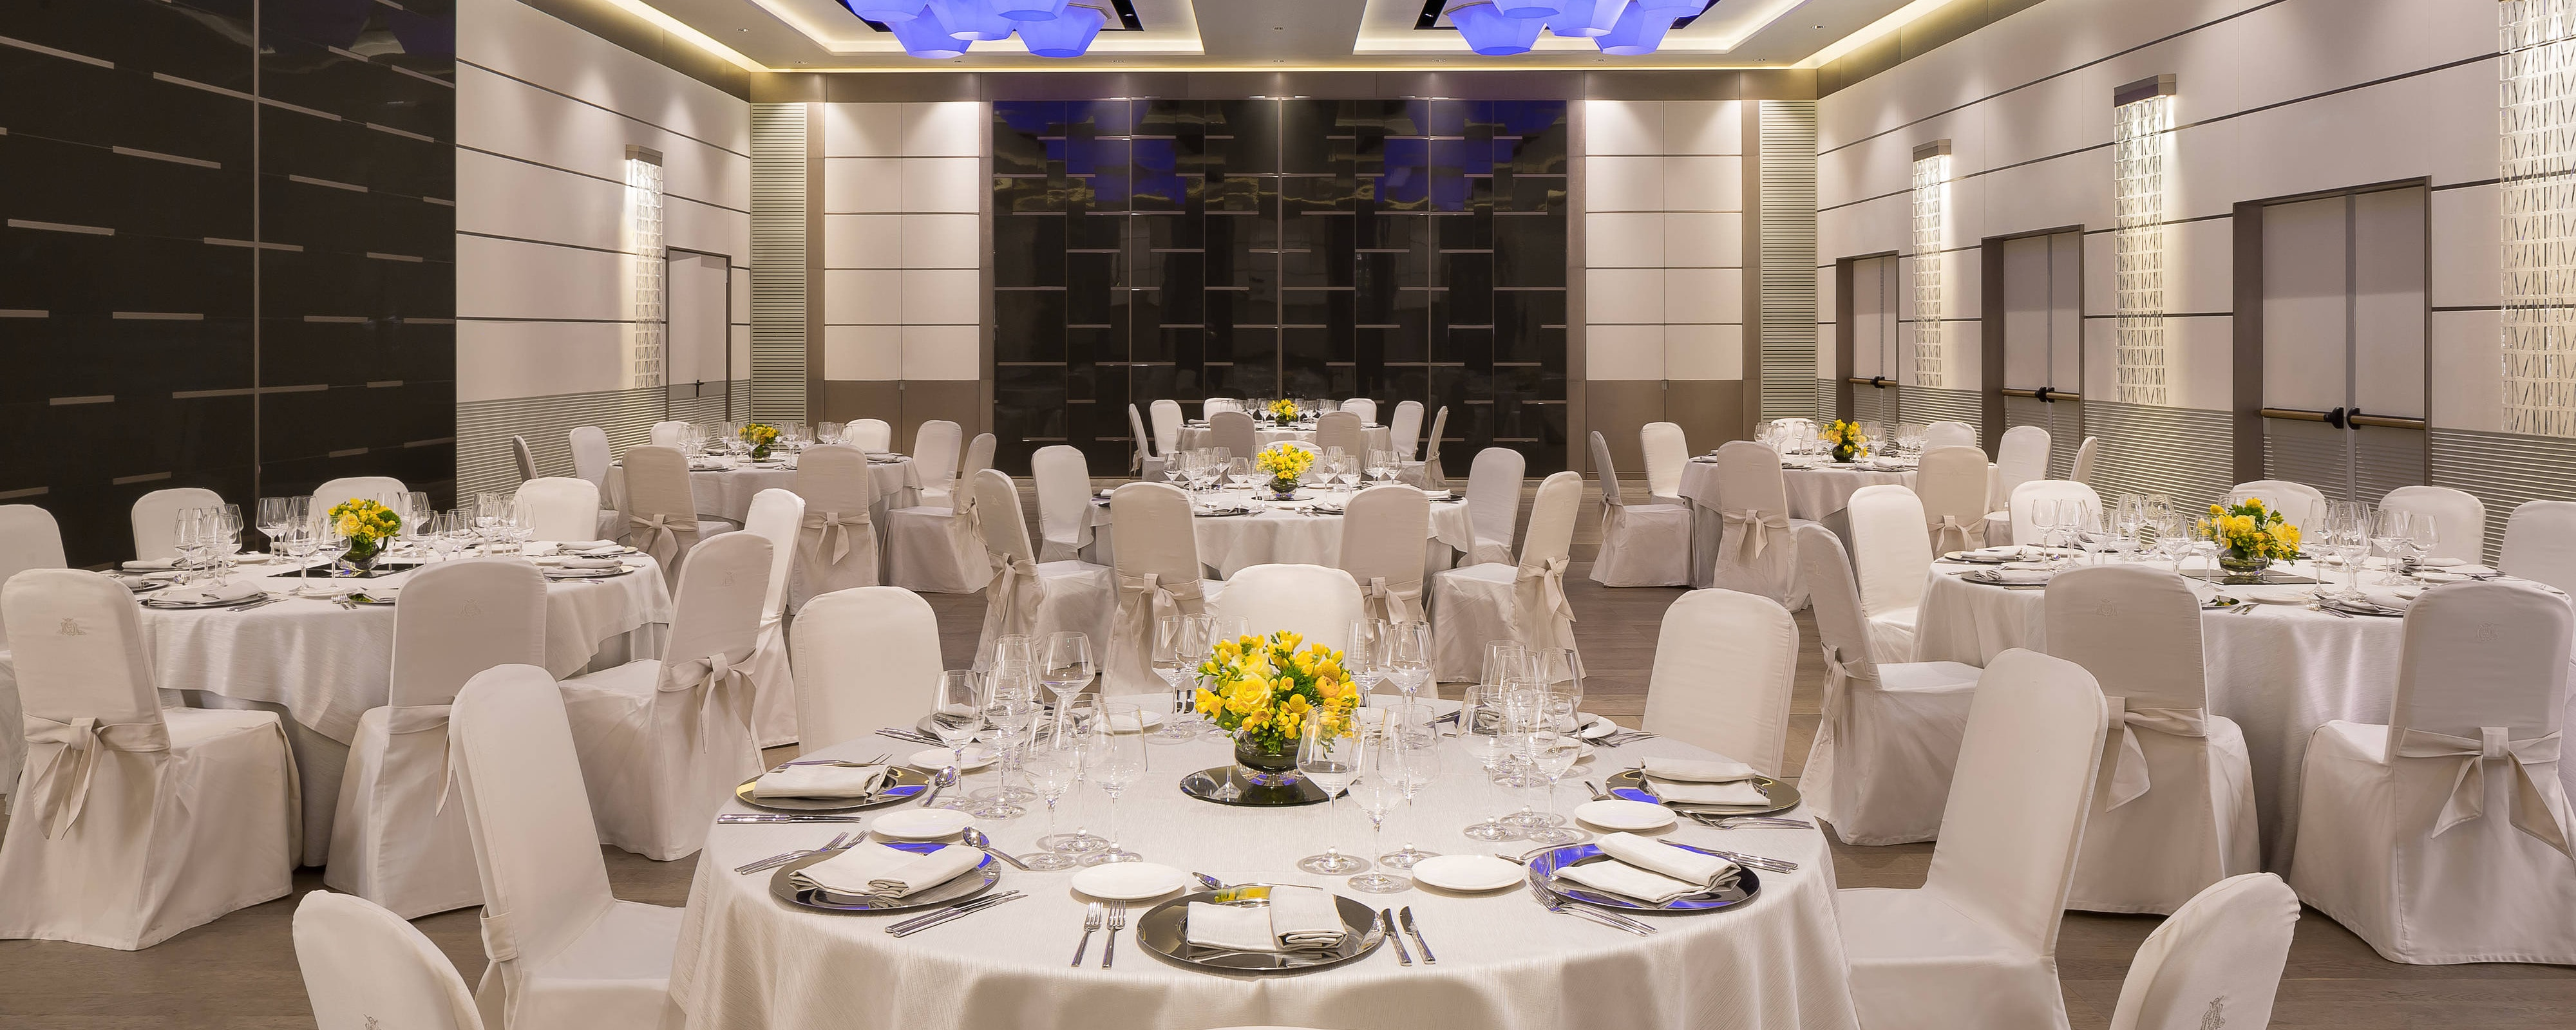 Wedding Venue Hotel In Milan Excelsior Hotel Gallia A